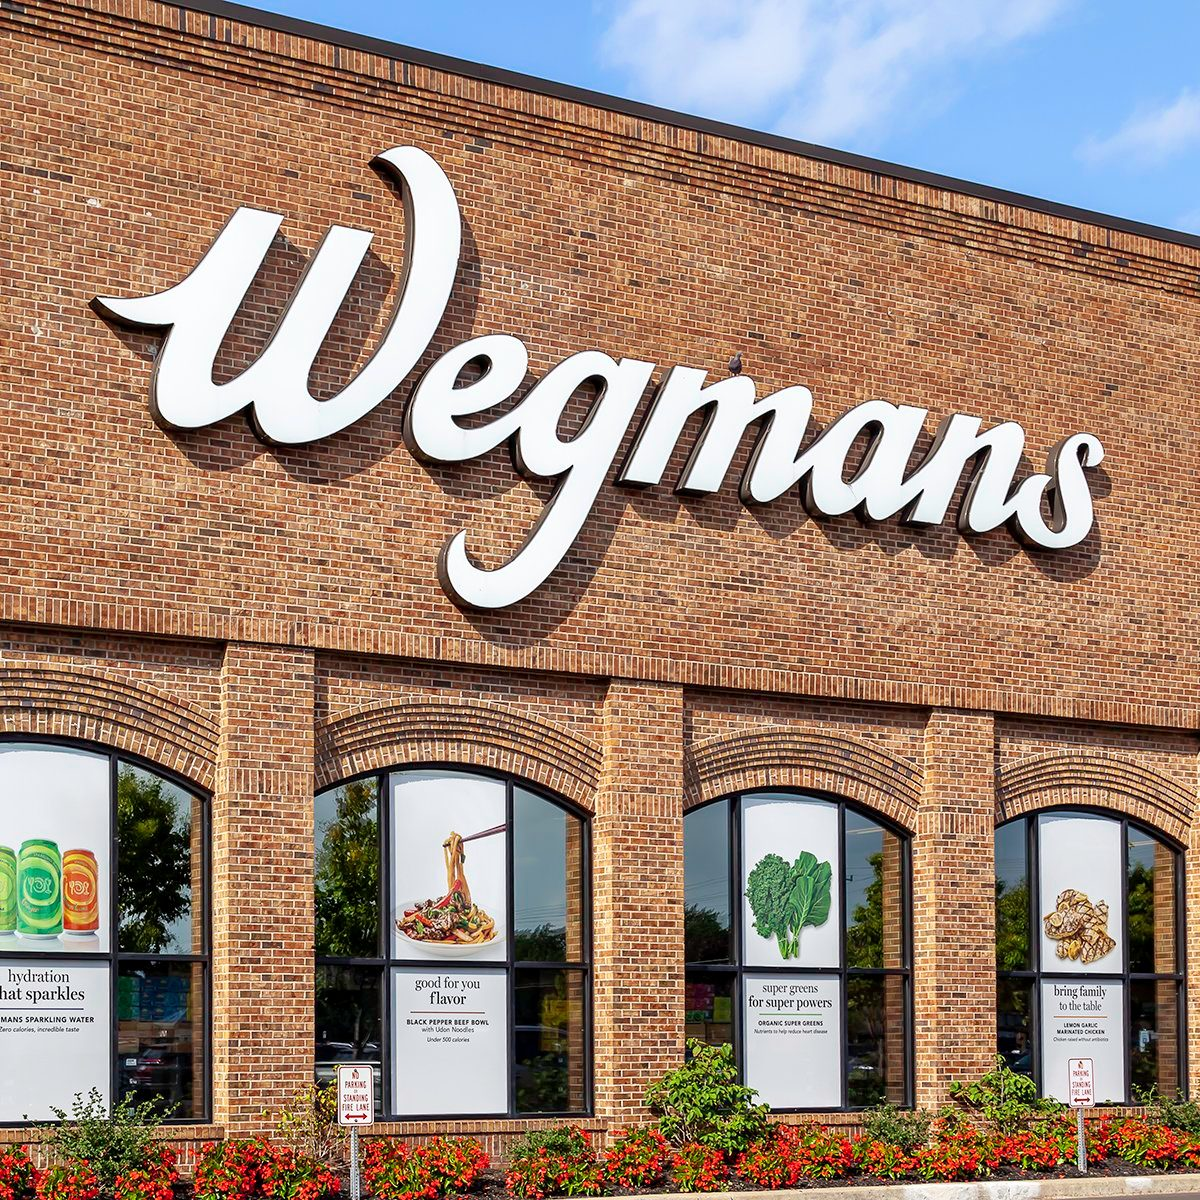 Buffalo, New York, USA - September 2, 2019: Wegmans Food Markets in Buffalo, New York, USA. Wegmans Food Markets Inc. is a privately held American supermarket chain.